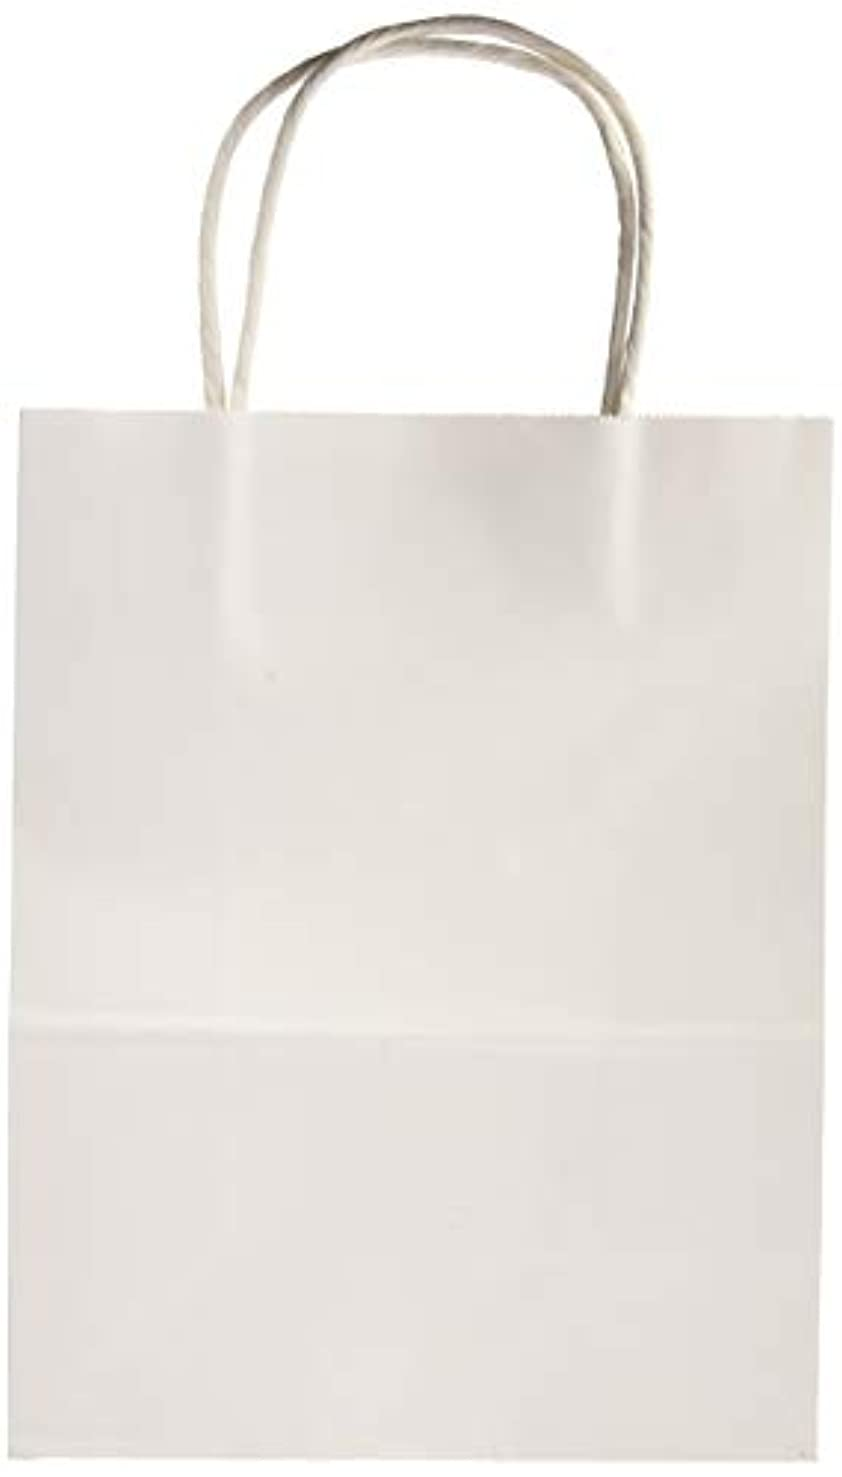 Darice BAG230 13Piece, White Value Pack Paper Bag, 4.25 by 8 by 10.25 inch